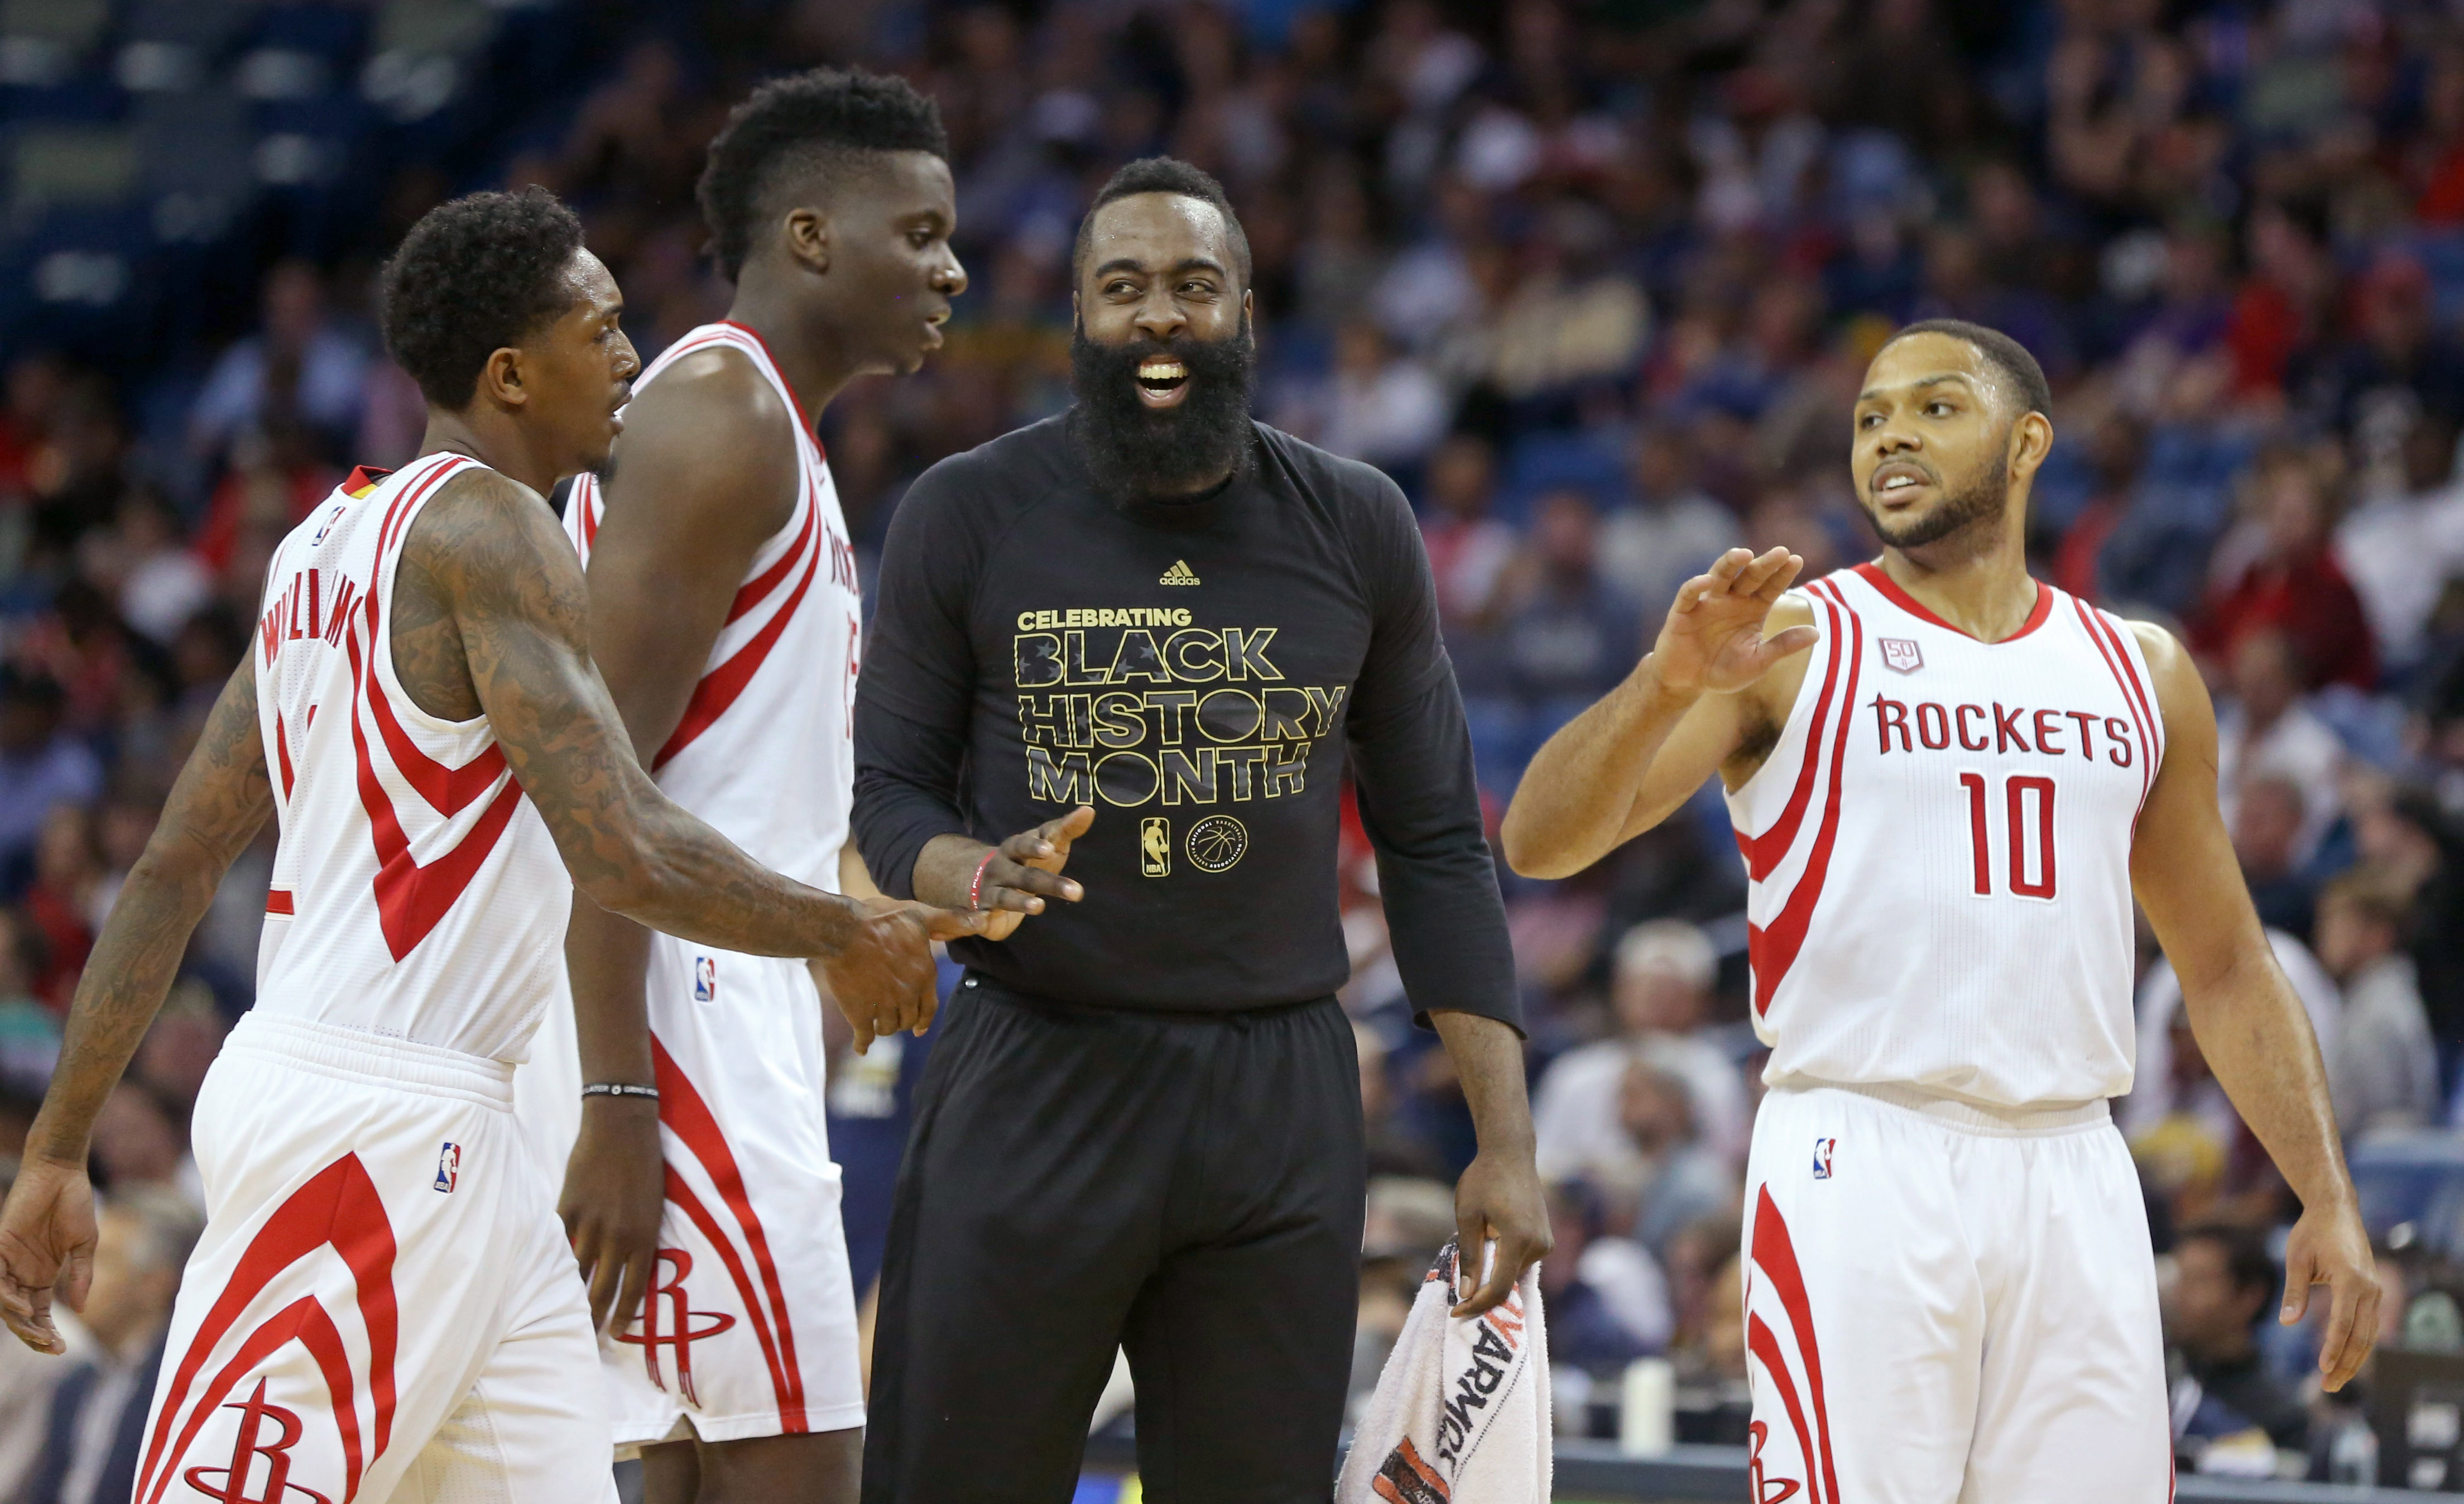 9896599-nba-houston-rockets-at-new-orleans-pelicans-3